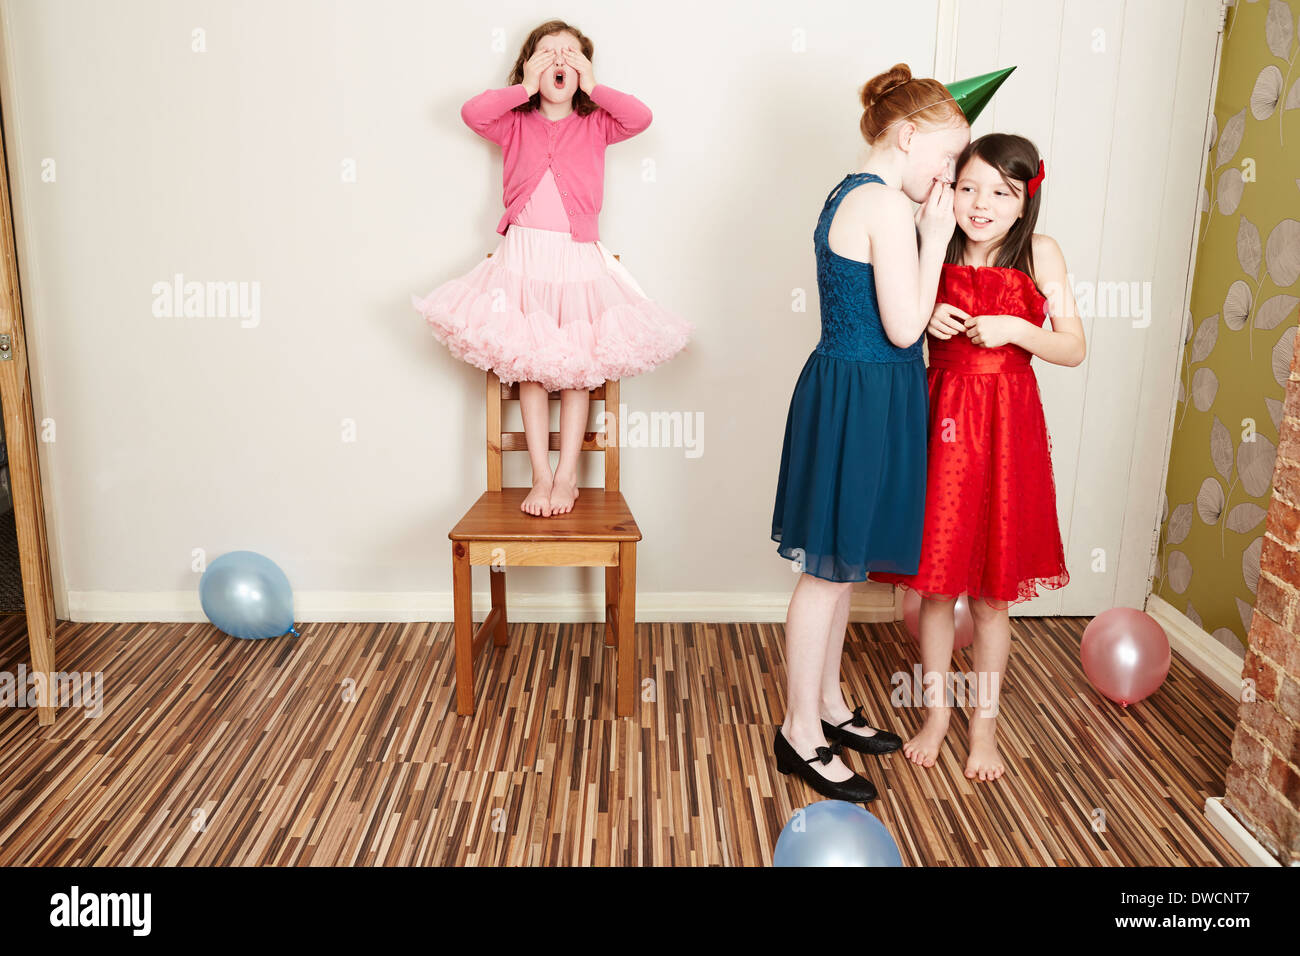 Three girls playing hide and seek at birthday party - Stock Image